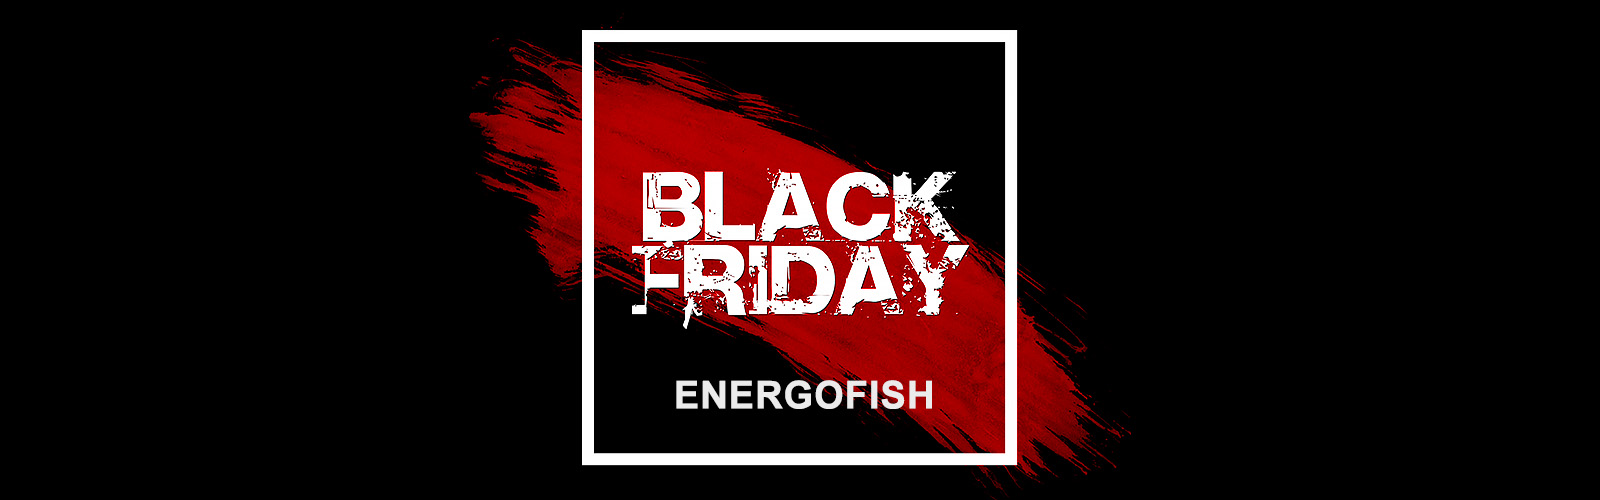 black-friday-energofish_slider